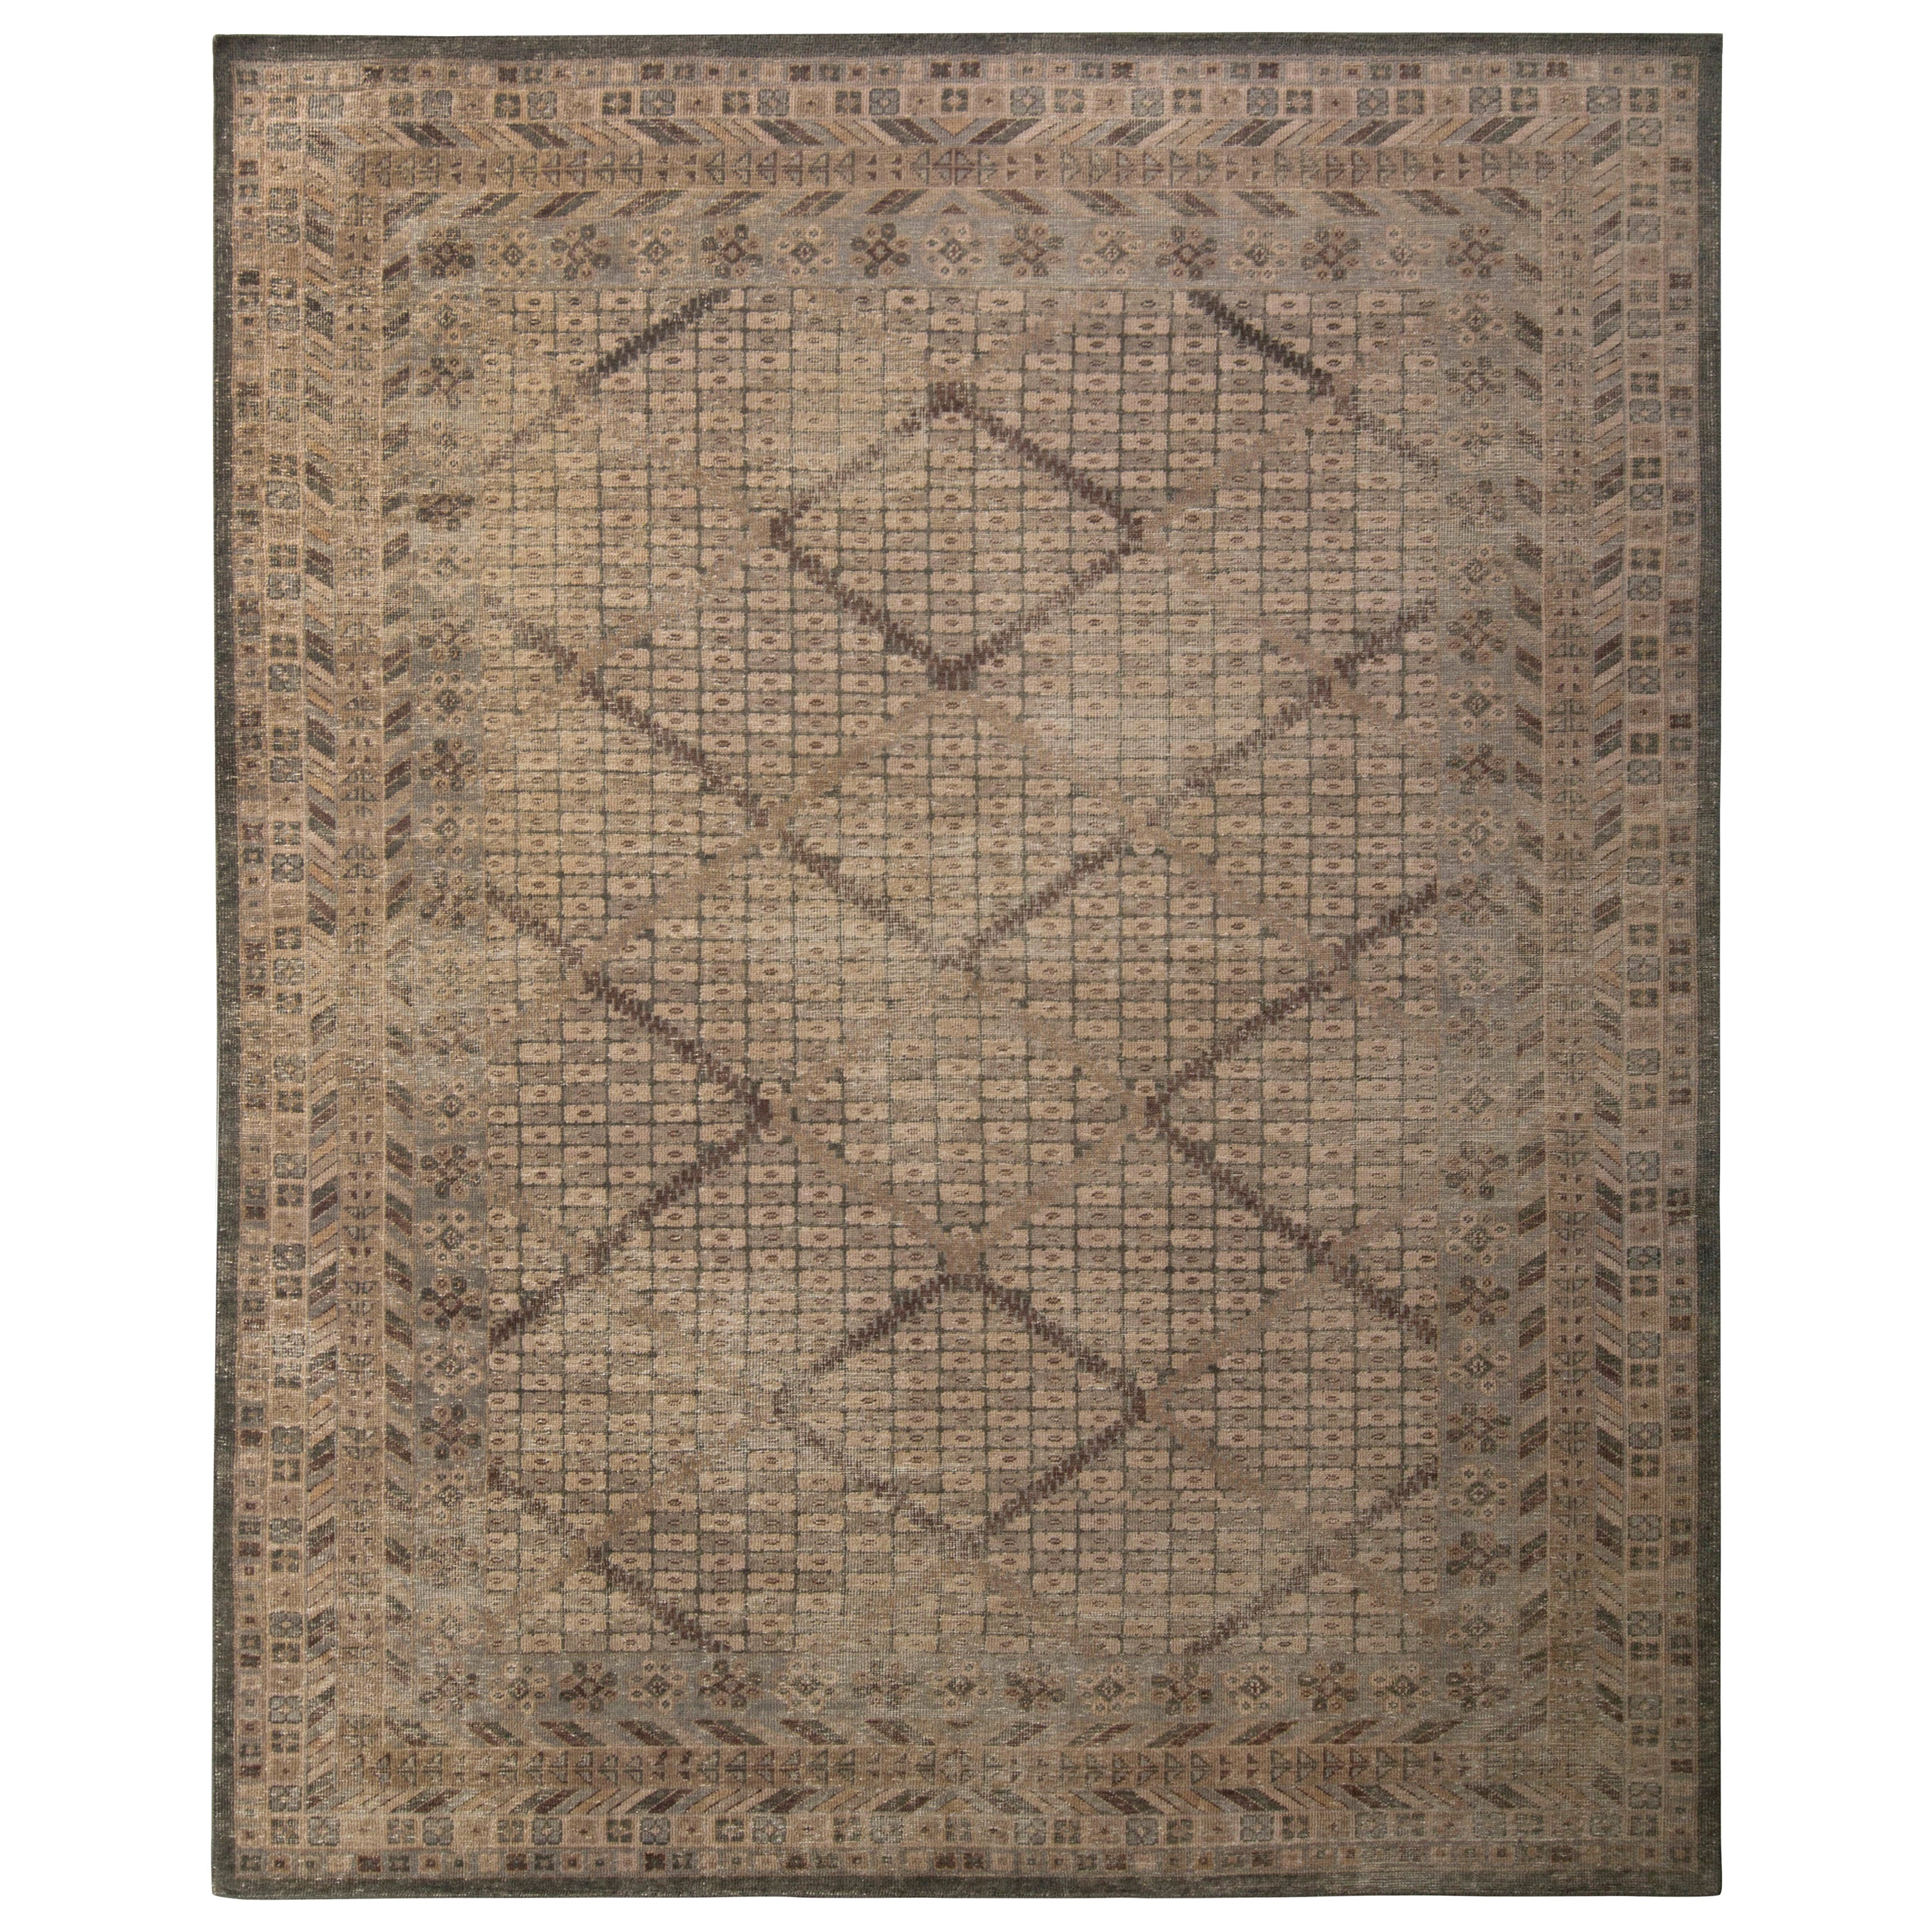 Hand Knotted Classic Rug Beige-Brown Blue Pattern by Rug & Kilim